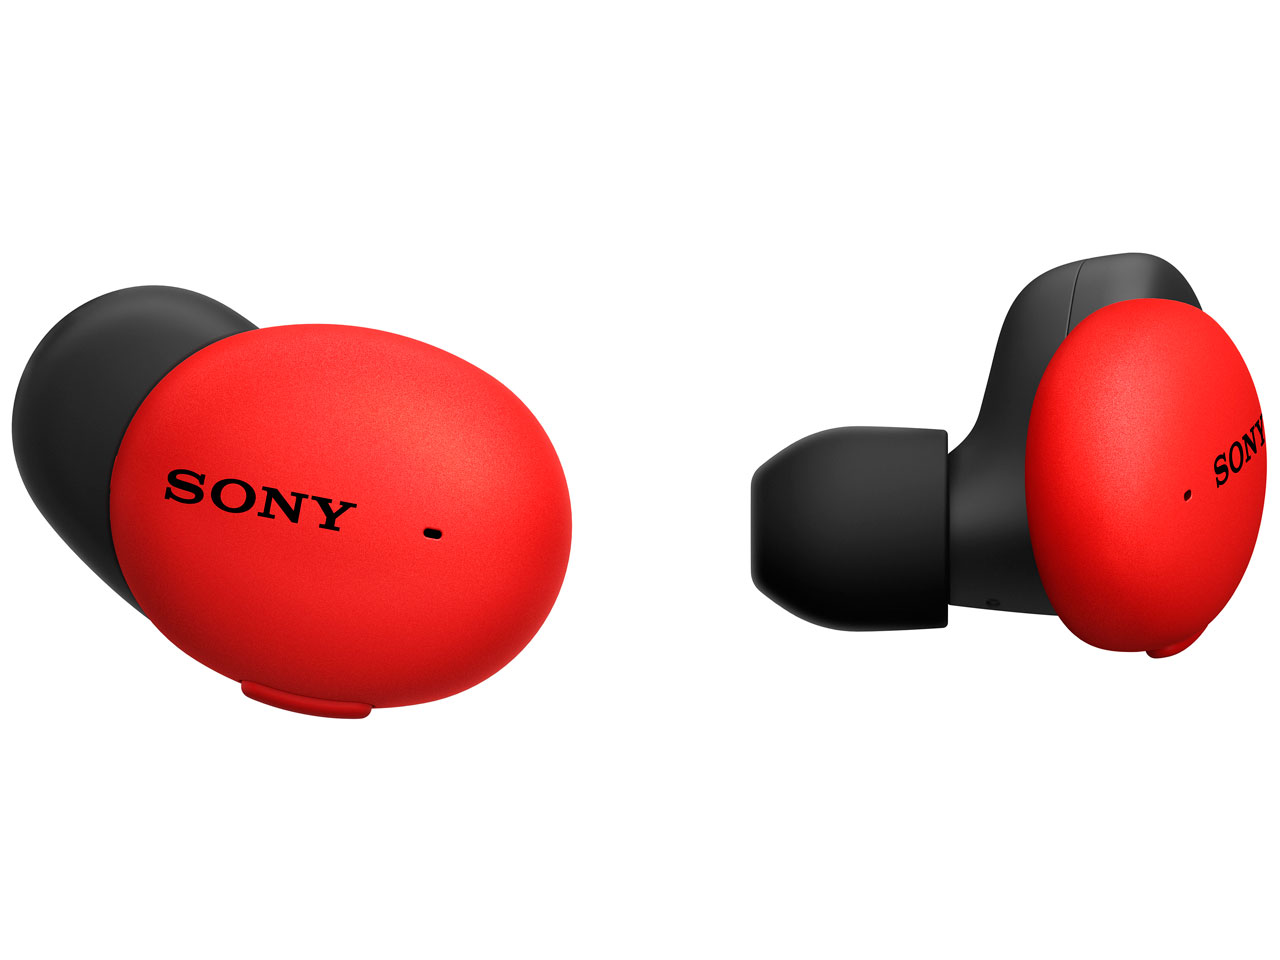 SONY h.ear in 3 Truly Wireless WF-H800 (R) [レッド]【お取り寄せ商品(3週間~4週間程度での入荷、発送)】